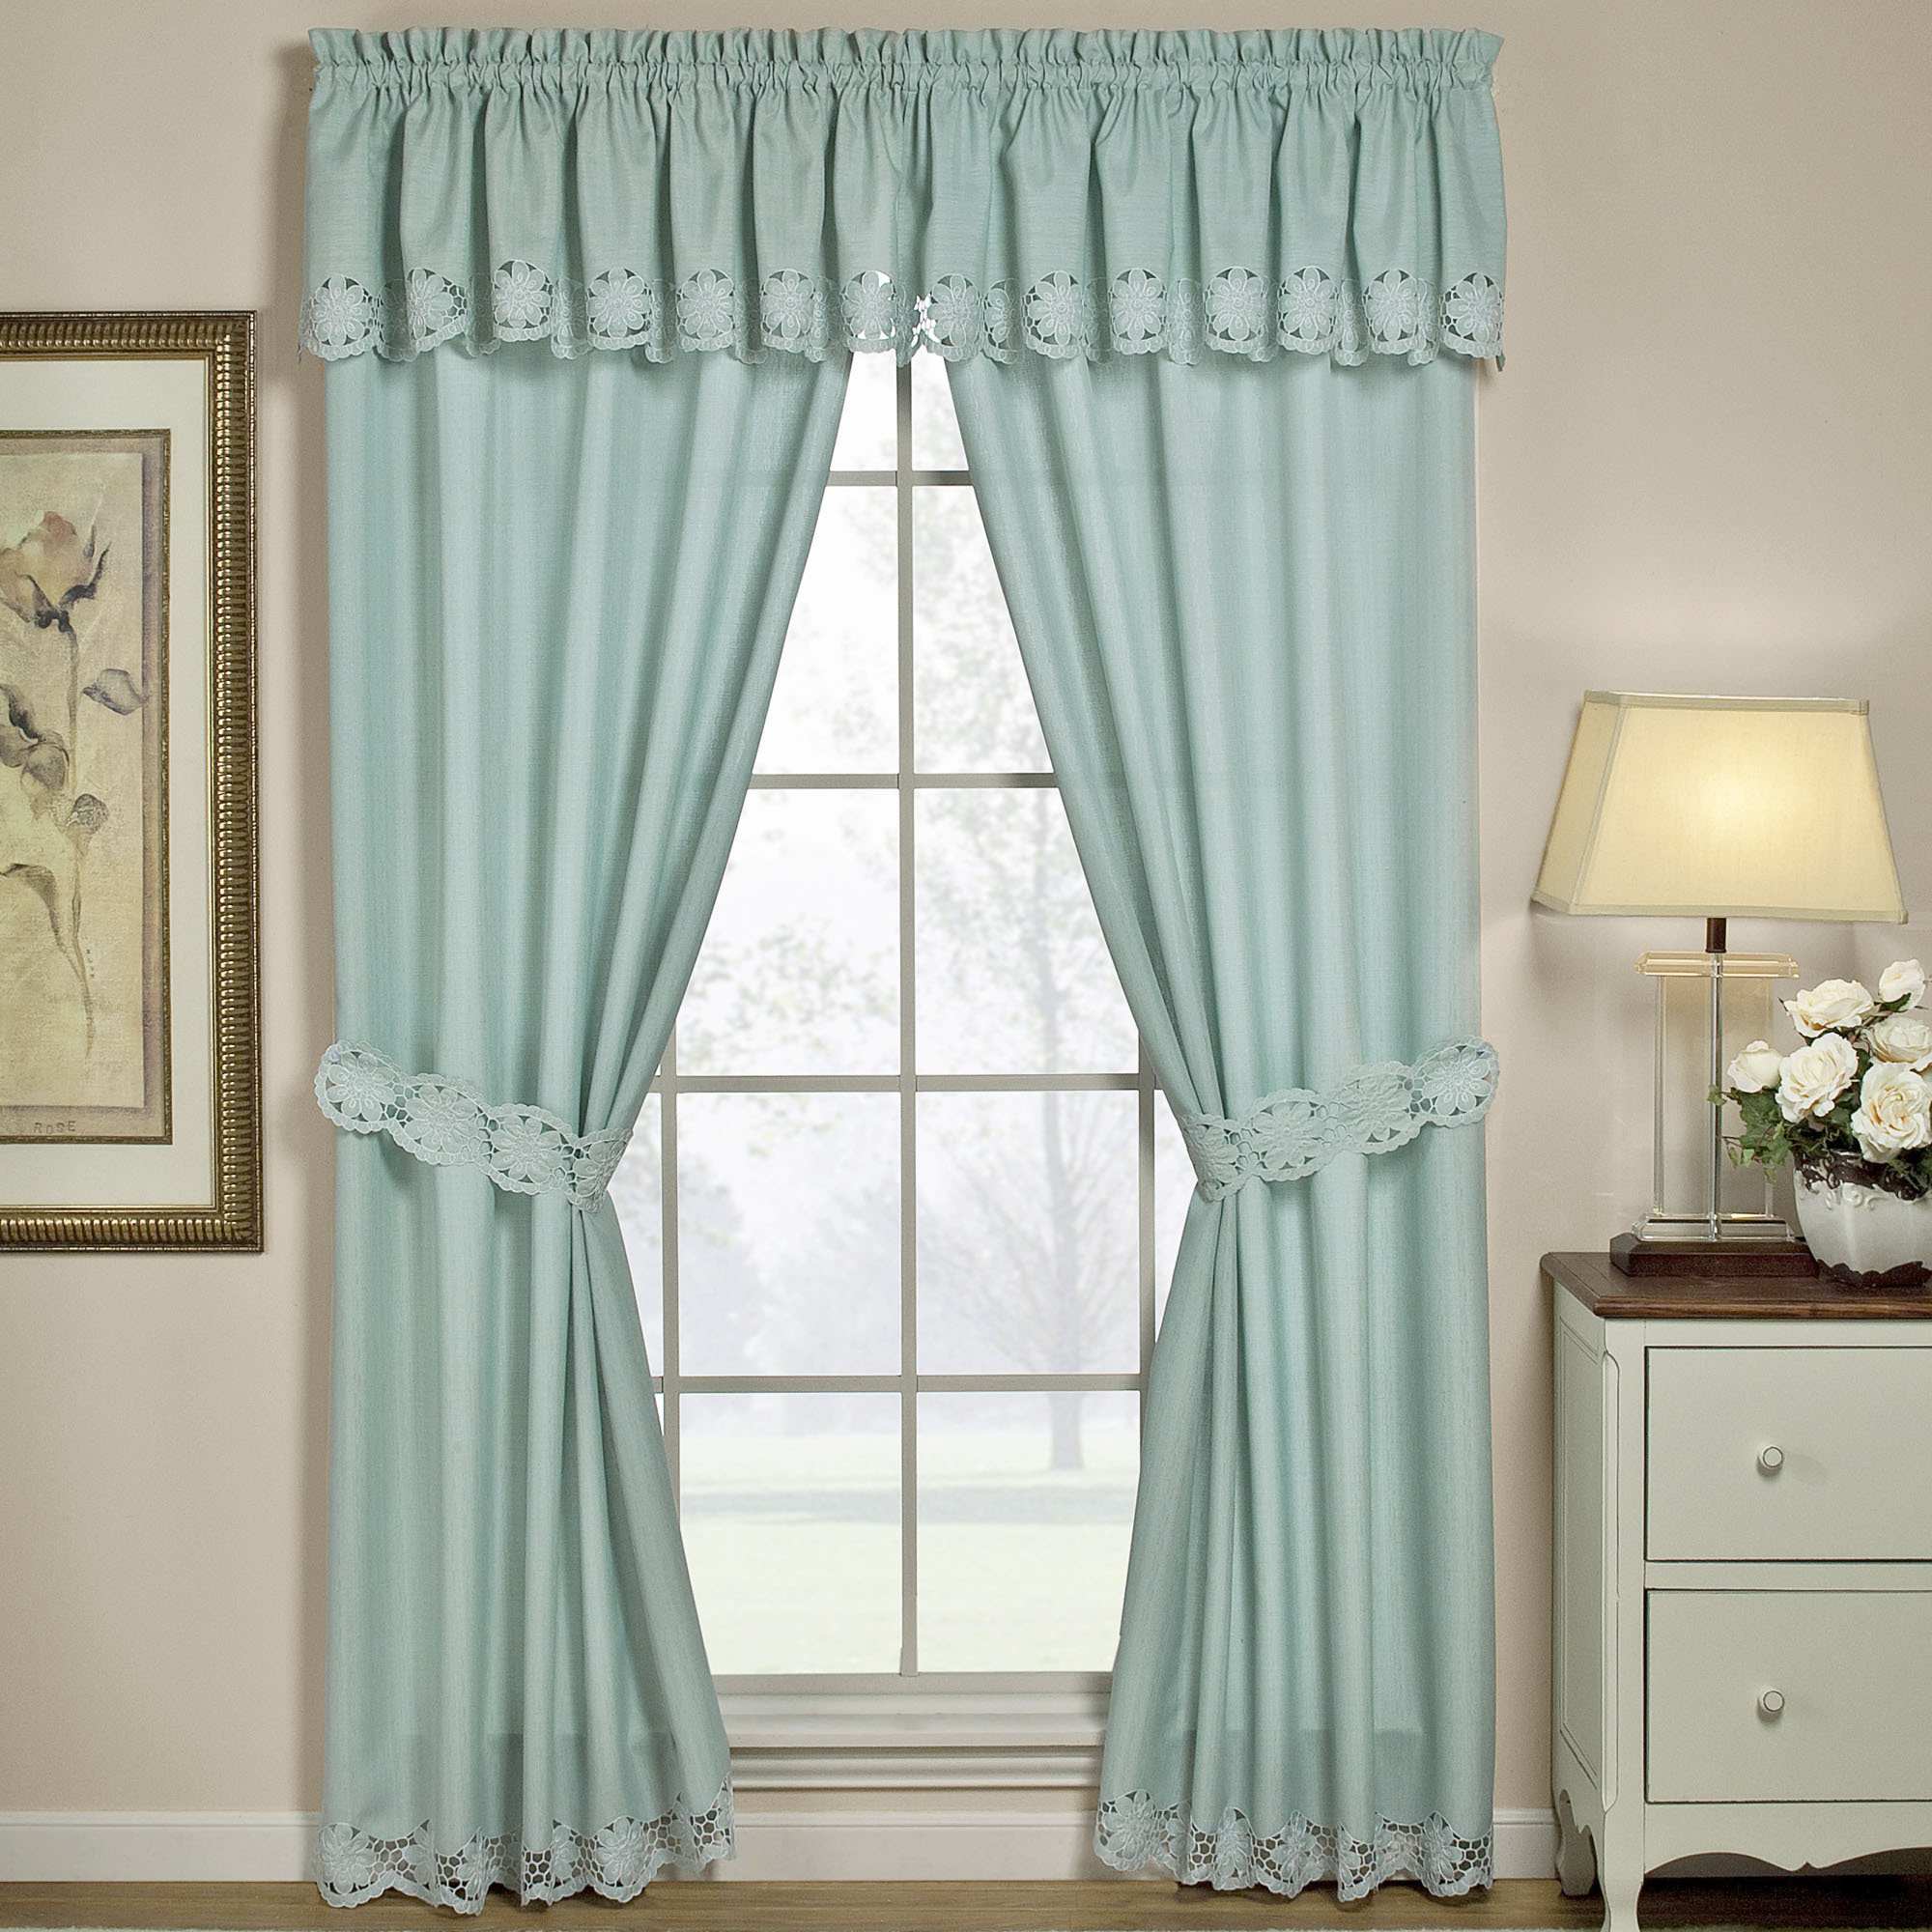 Window Drapes | Window Drapes Pictures | Cheap Window Curtains and Drapes